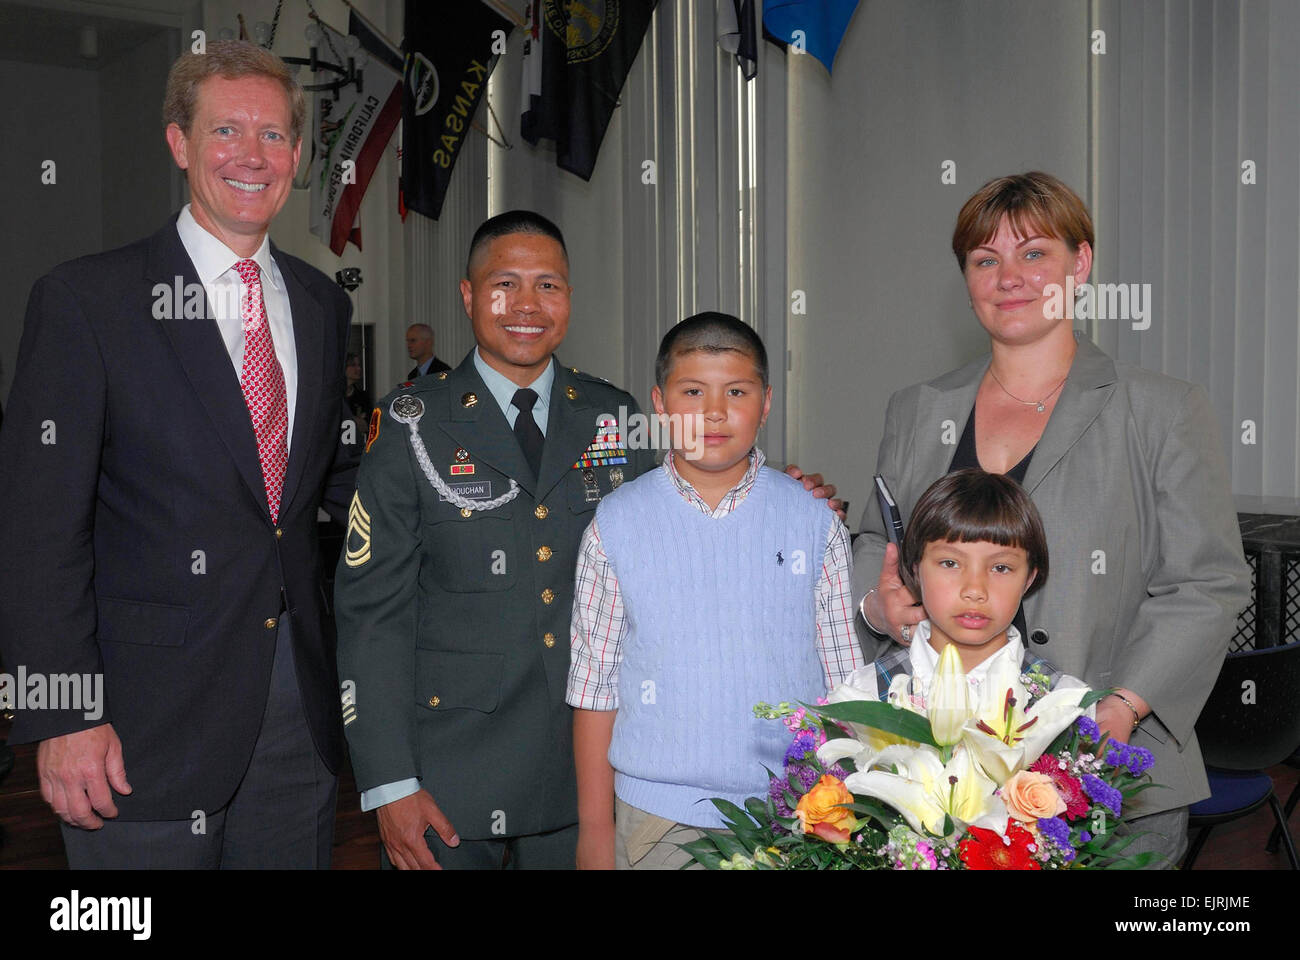 Jonathan Scharfen, acting director of U.S. Citizenship and Immigration Services, poses with Army Sgt. 1st Class Stock Photo